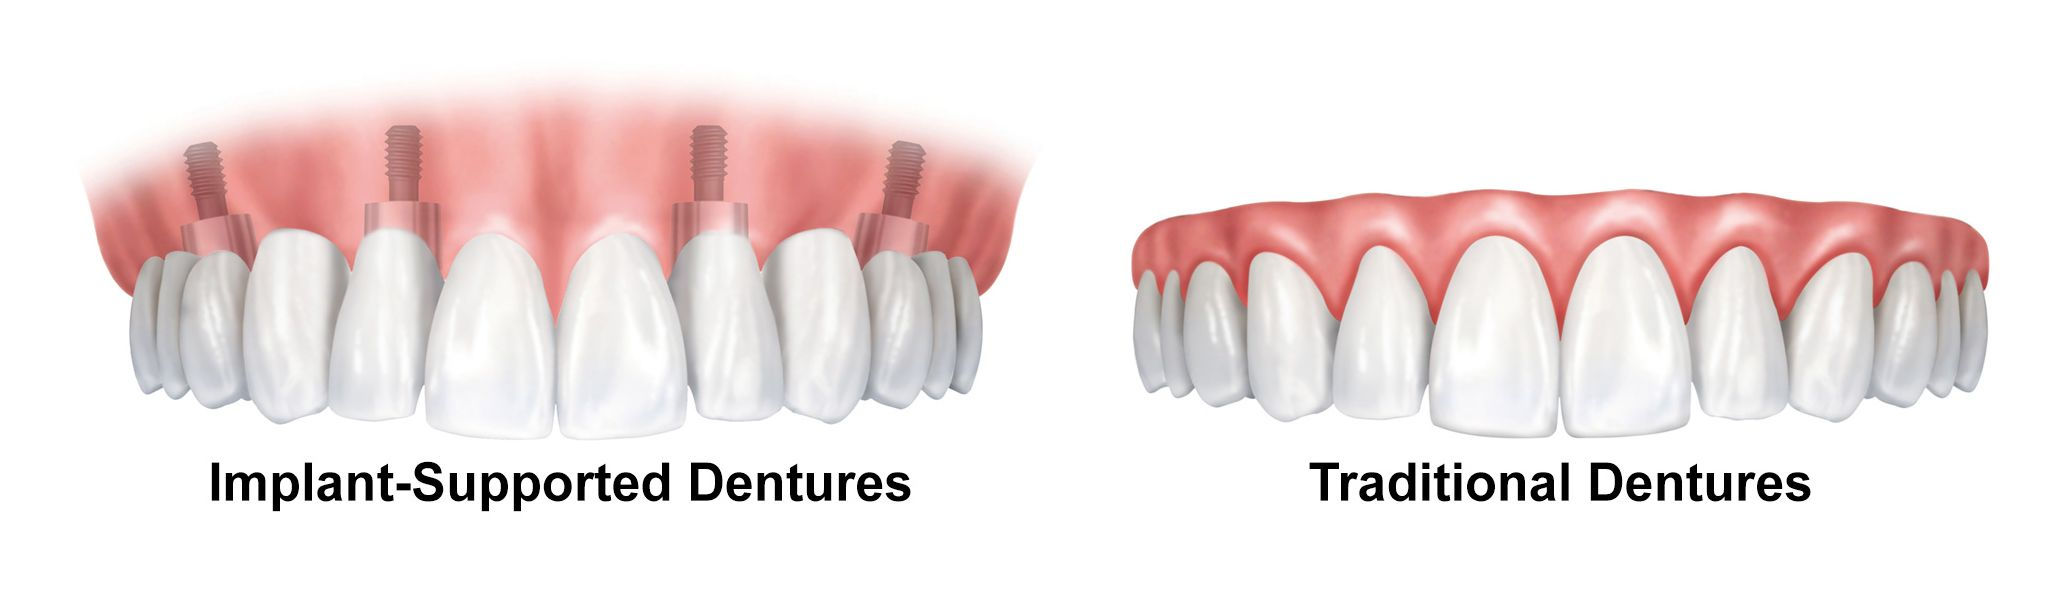 gums with implant-supported dentures diagram white teeth pink gums traditional dentures